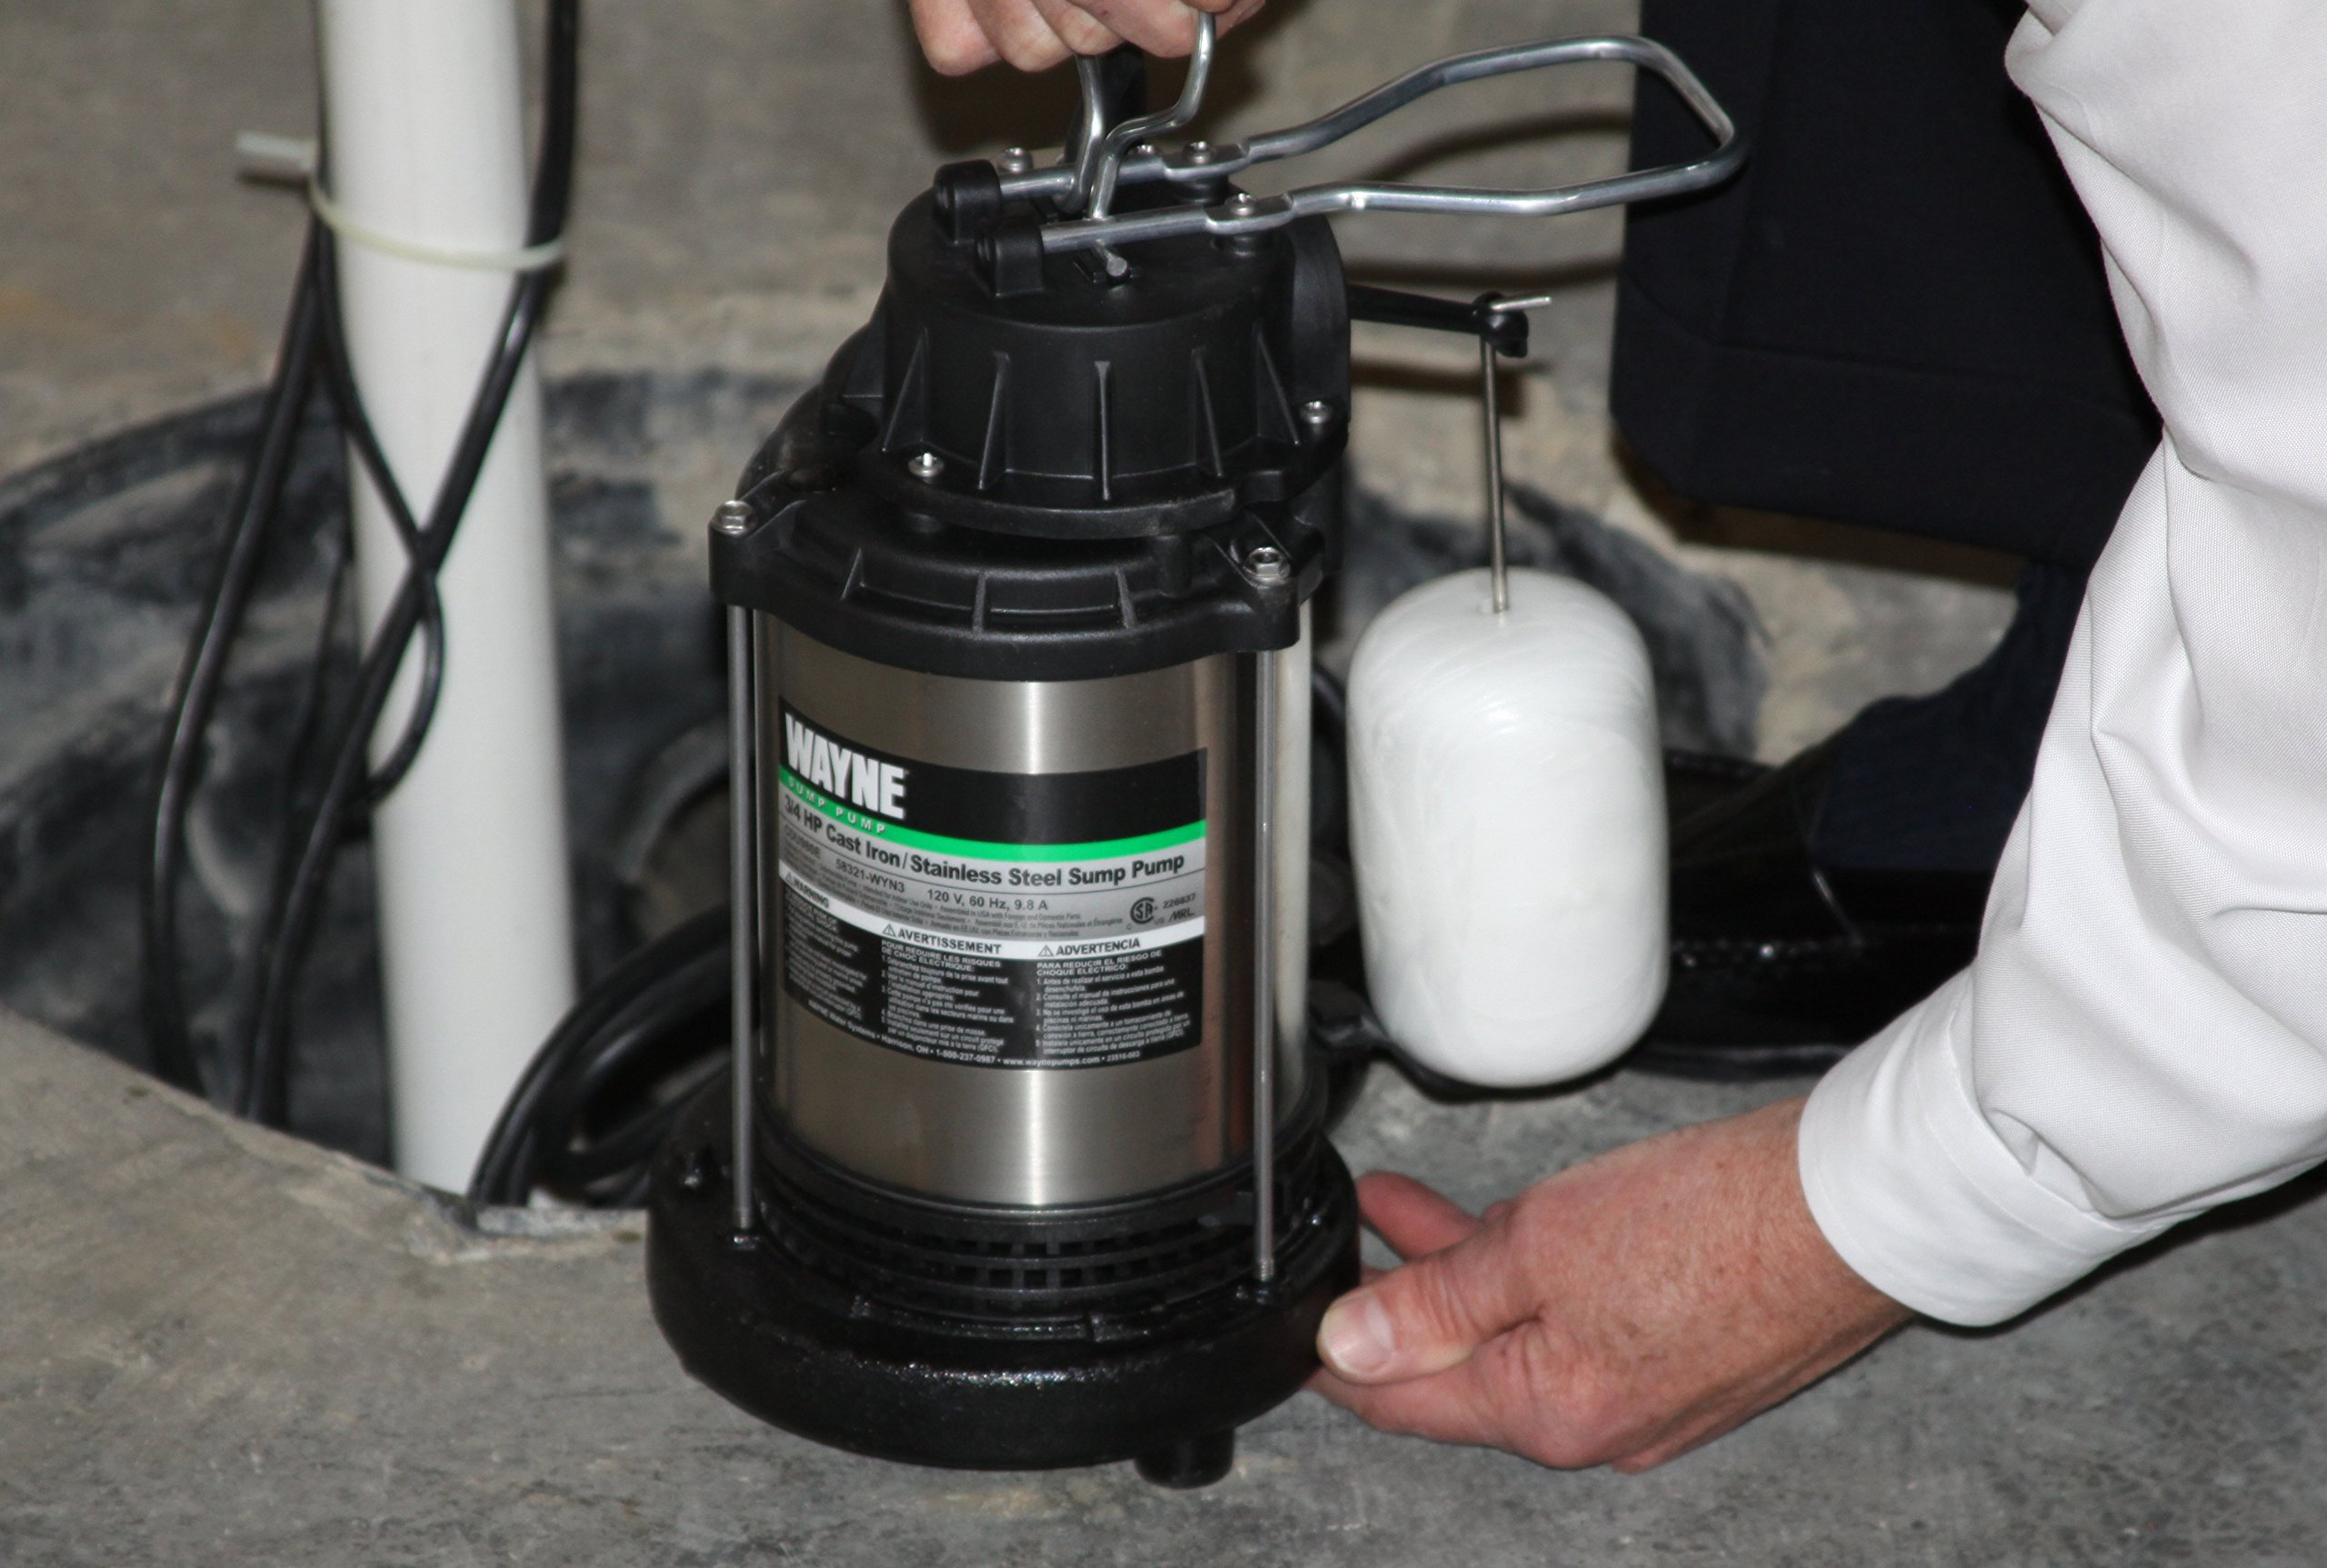 WAYNE CDU980E 3/4 HP Submersible Cast Iron and Stainless Steel Sump Pump With Integrated Vertical Float Switch by Wayne (Image #4)